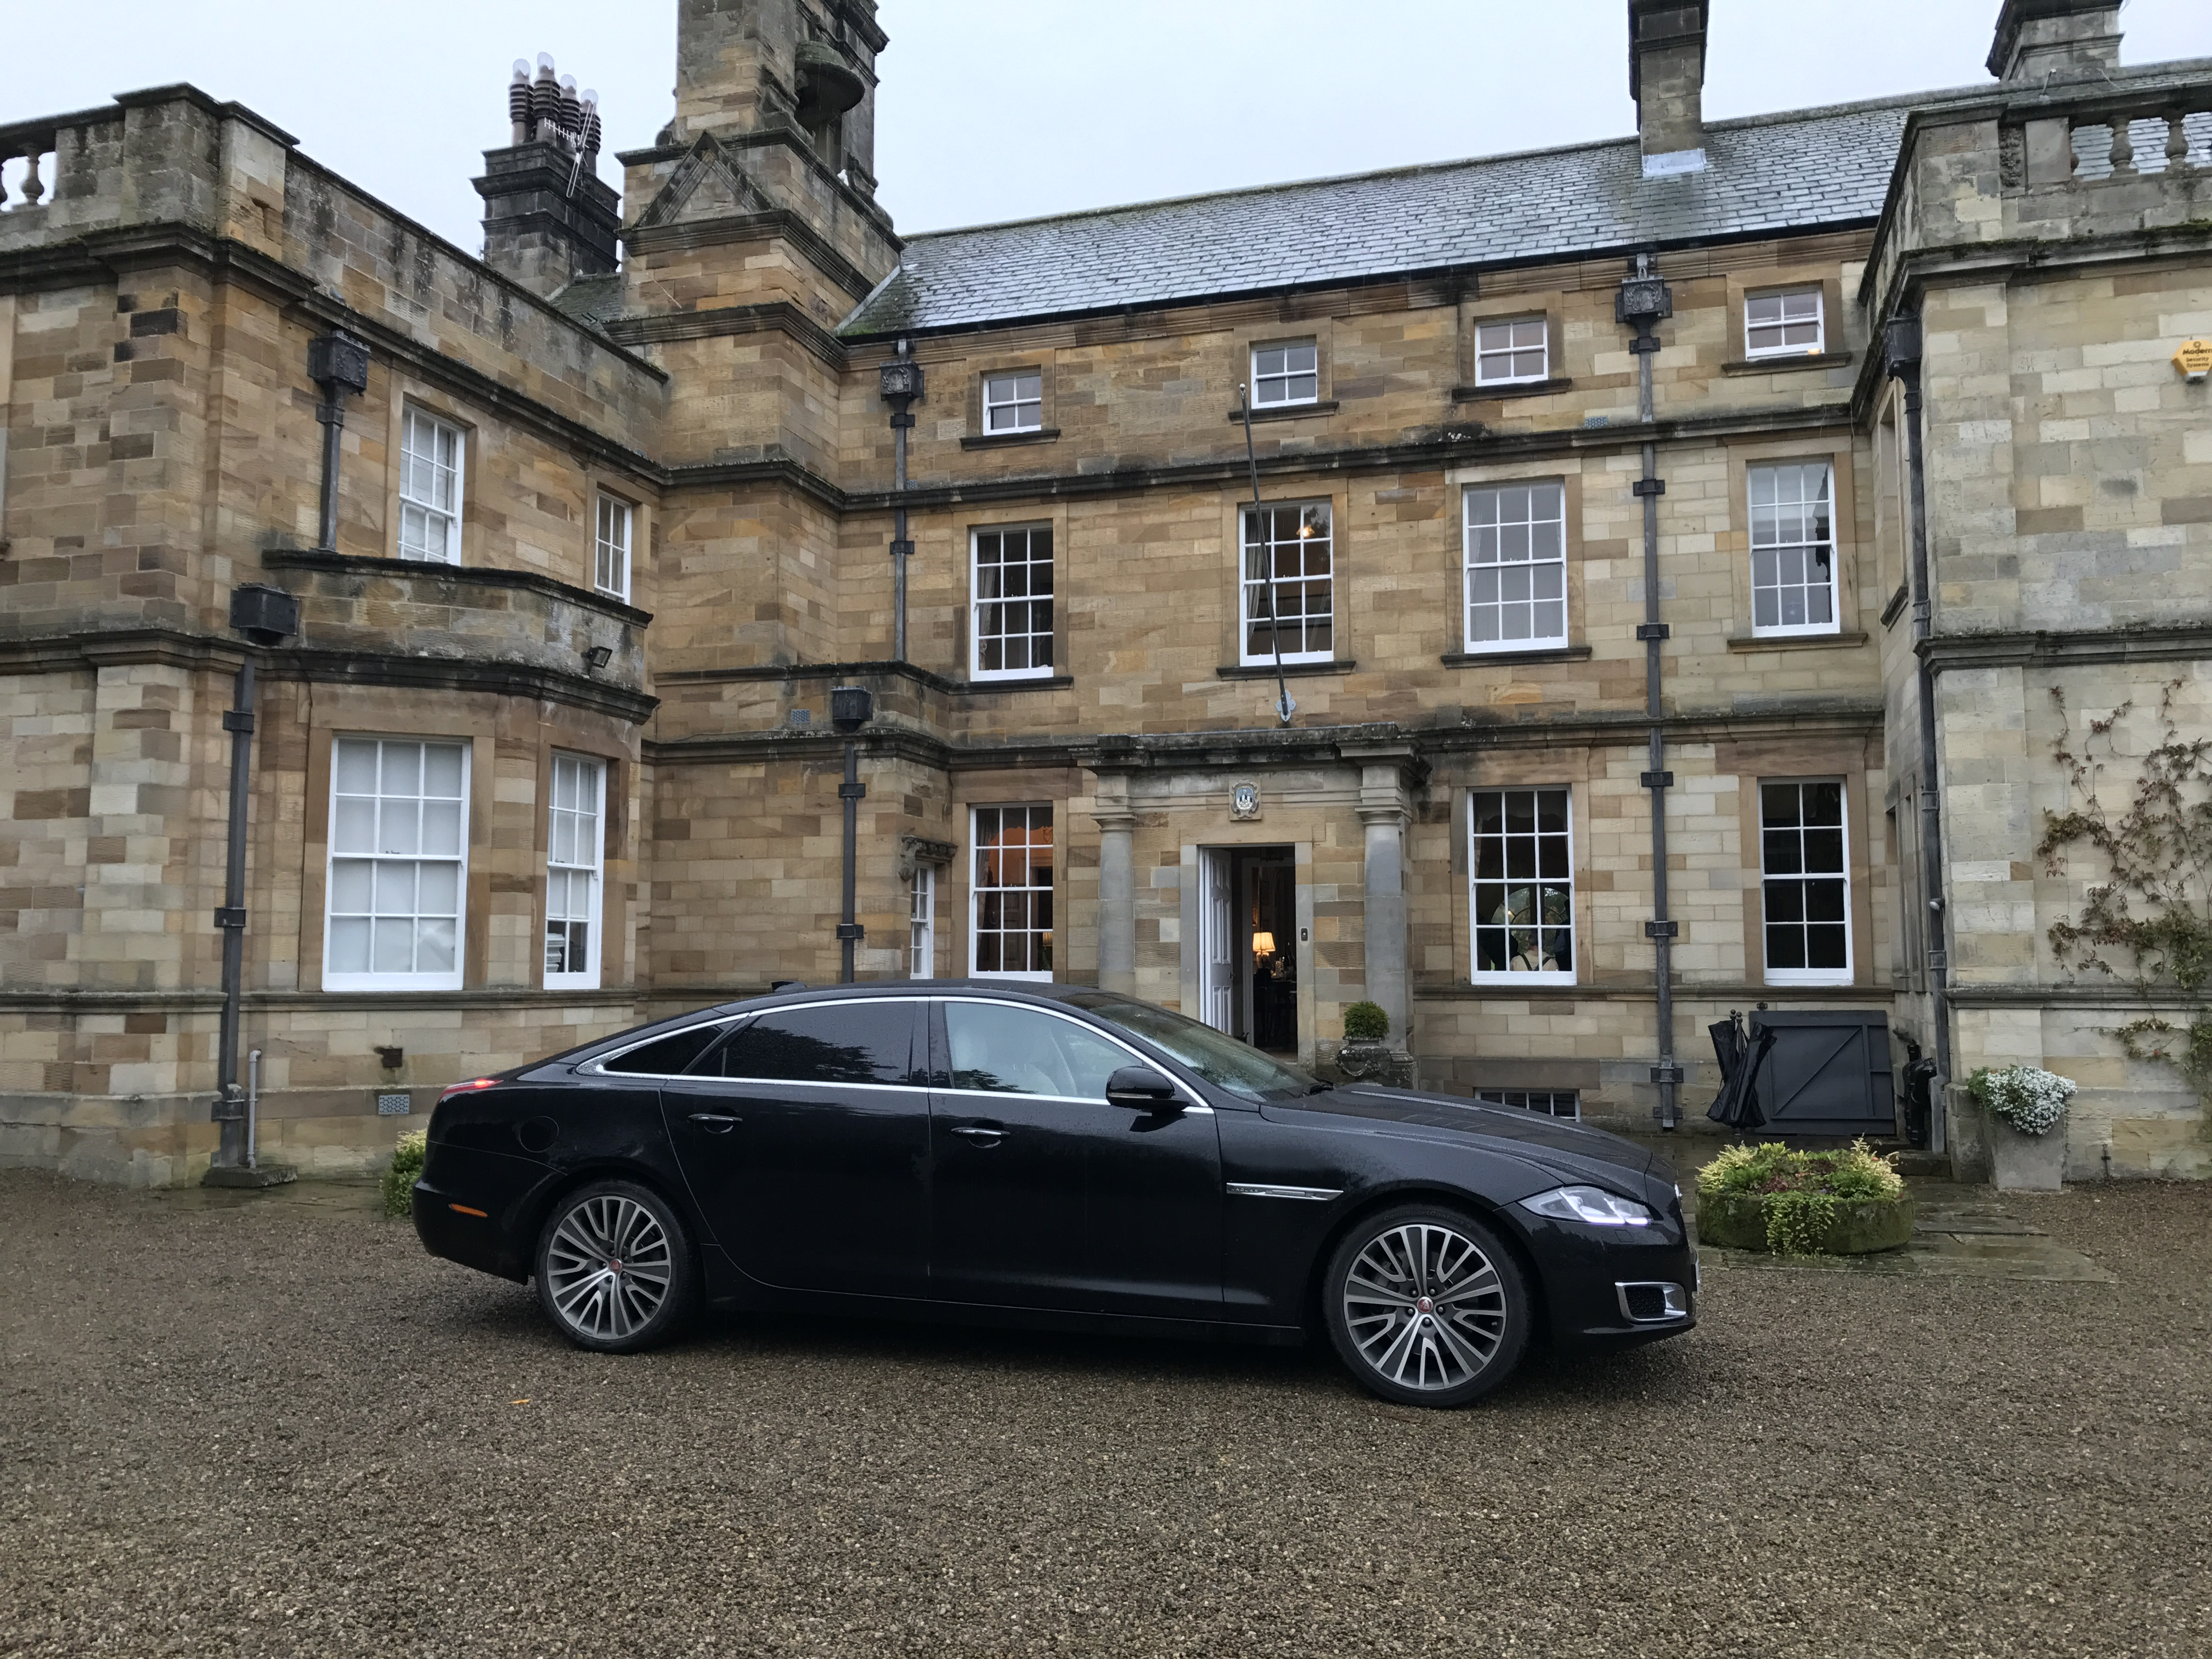 Jaguar XJL at Egton Shooting Estate, near Whitby in North Yorkshire